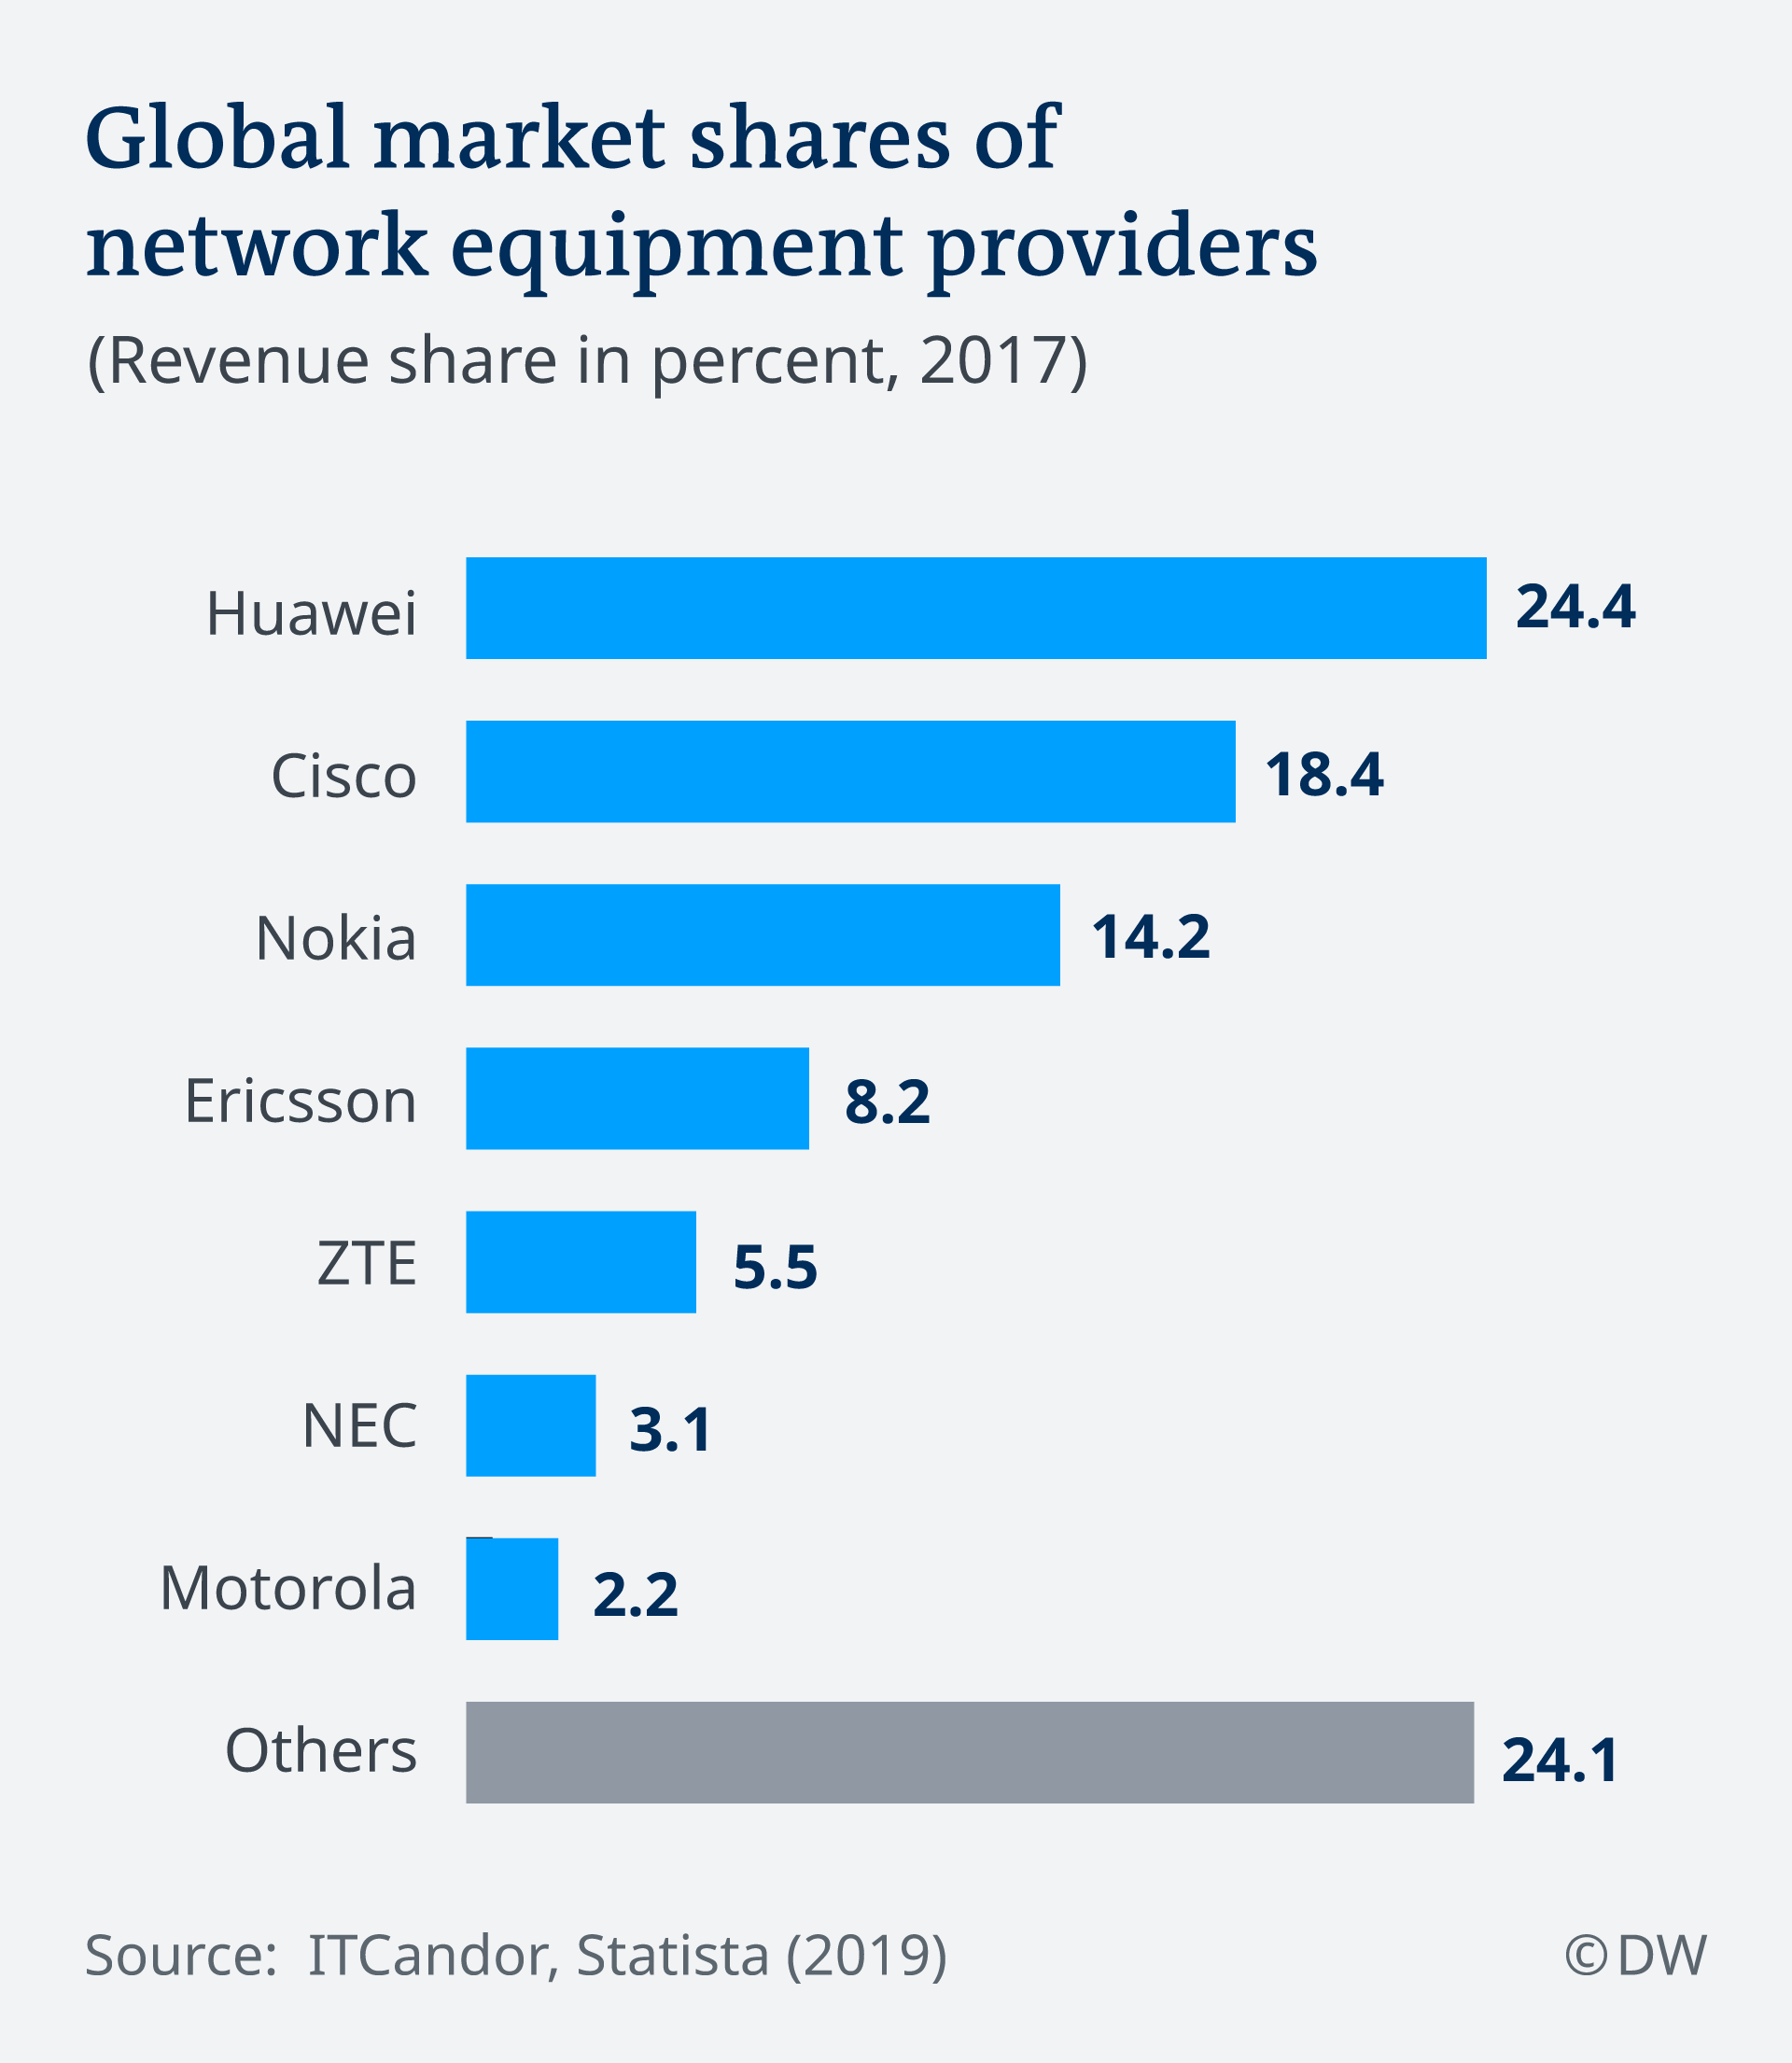 Global market shares of network equipment providers